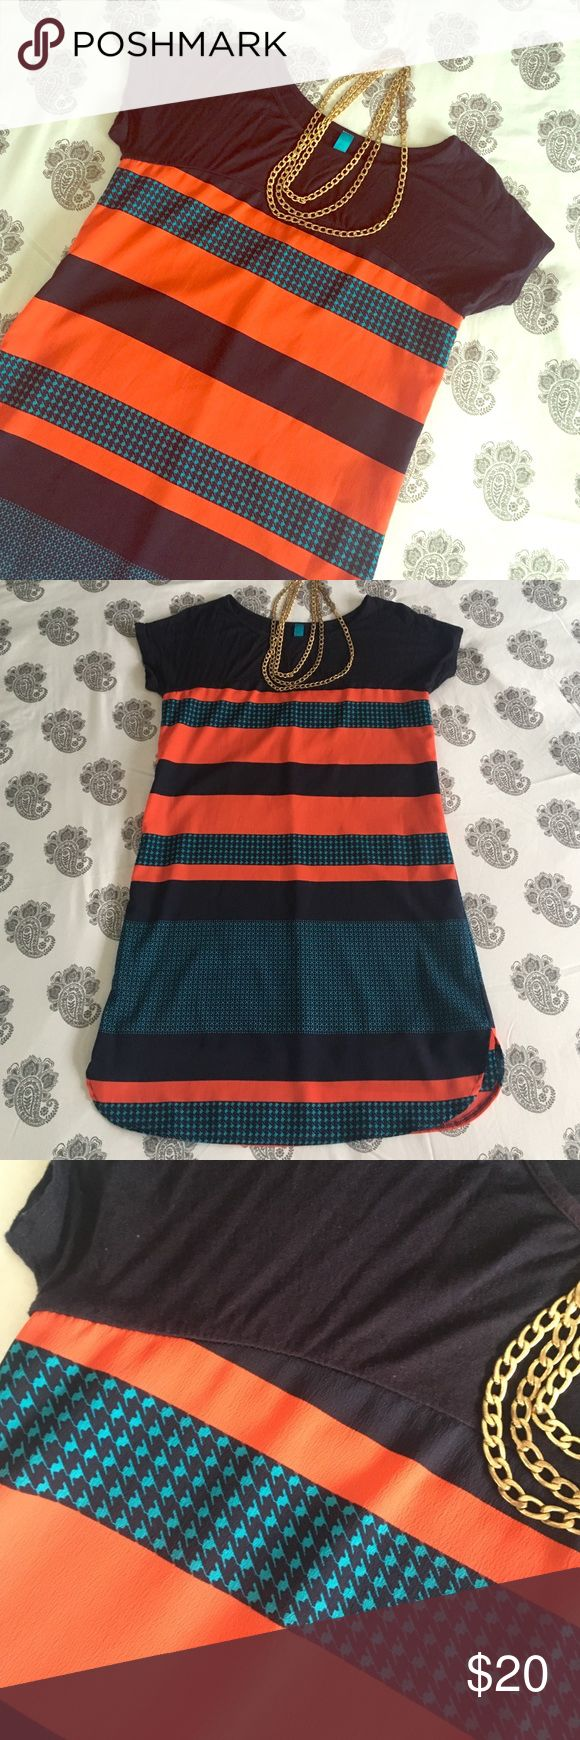 Shift dress Cap sleeve shift dress with graphic print. Tshirt material across yoke, rest of dress is polyester. Scallop detail at hem. Buttons design Francesca's Collections Dresses Mini